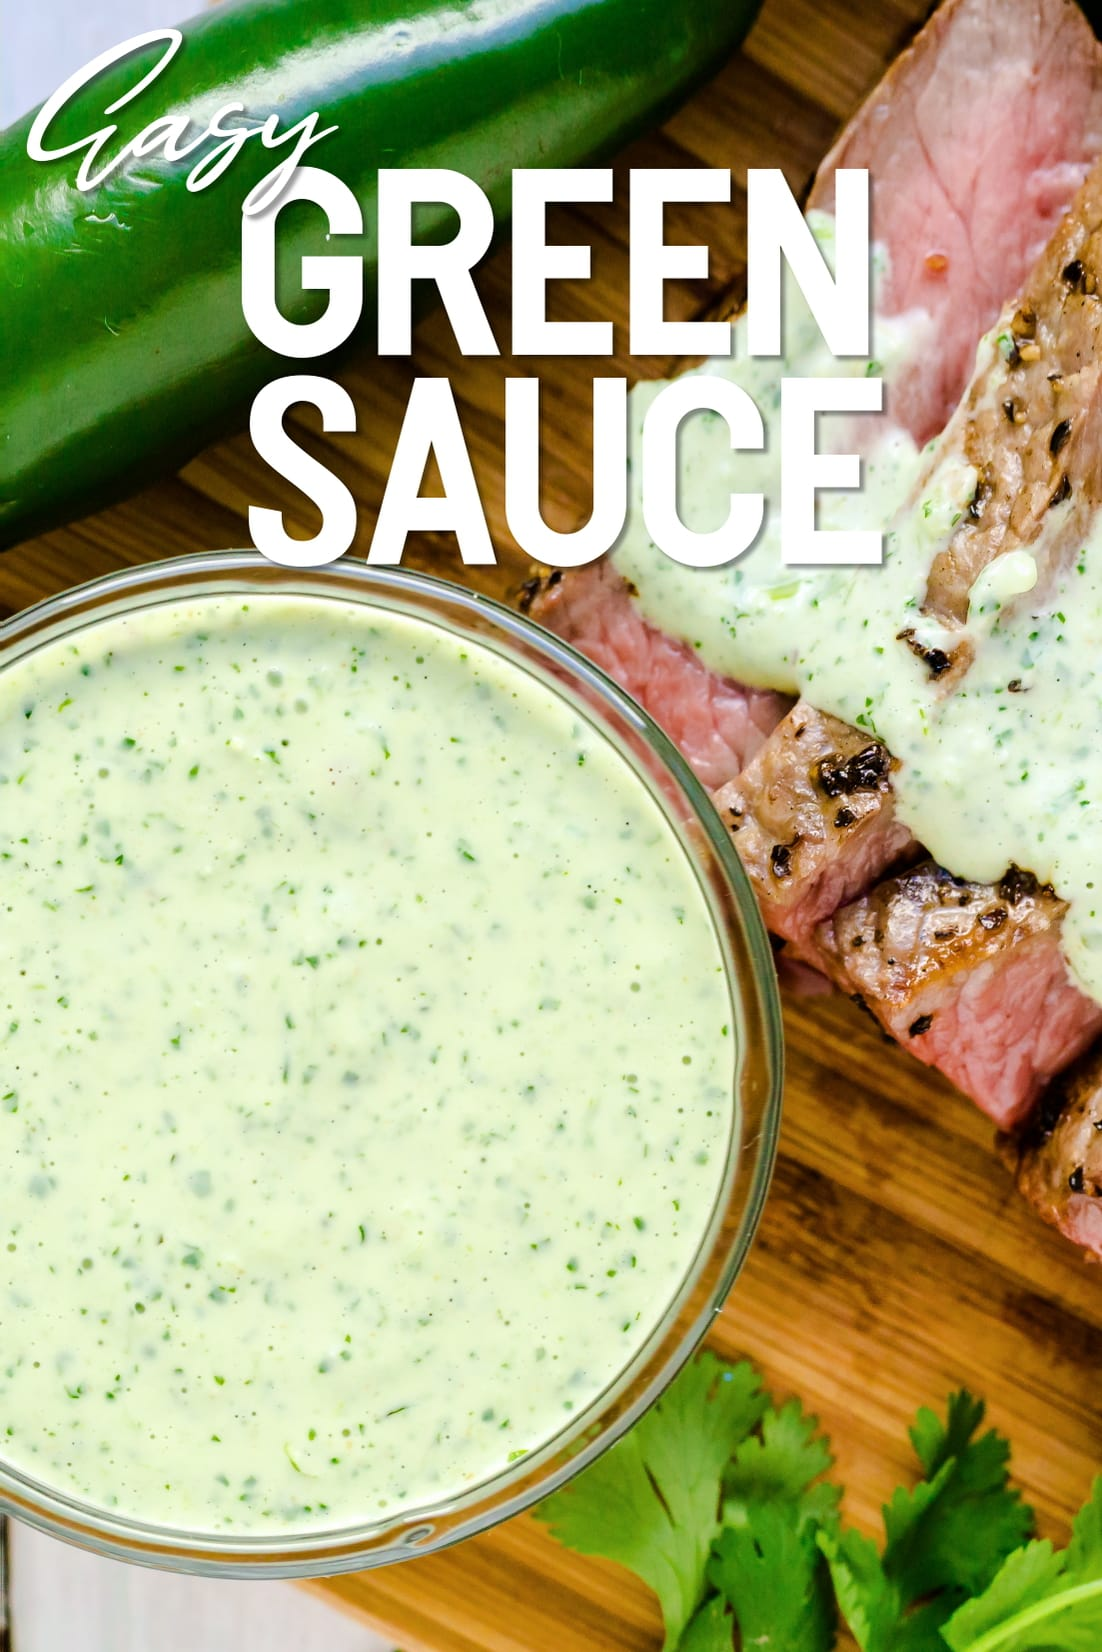 The green sauce served with grilled New York steak.